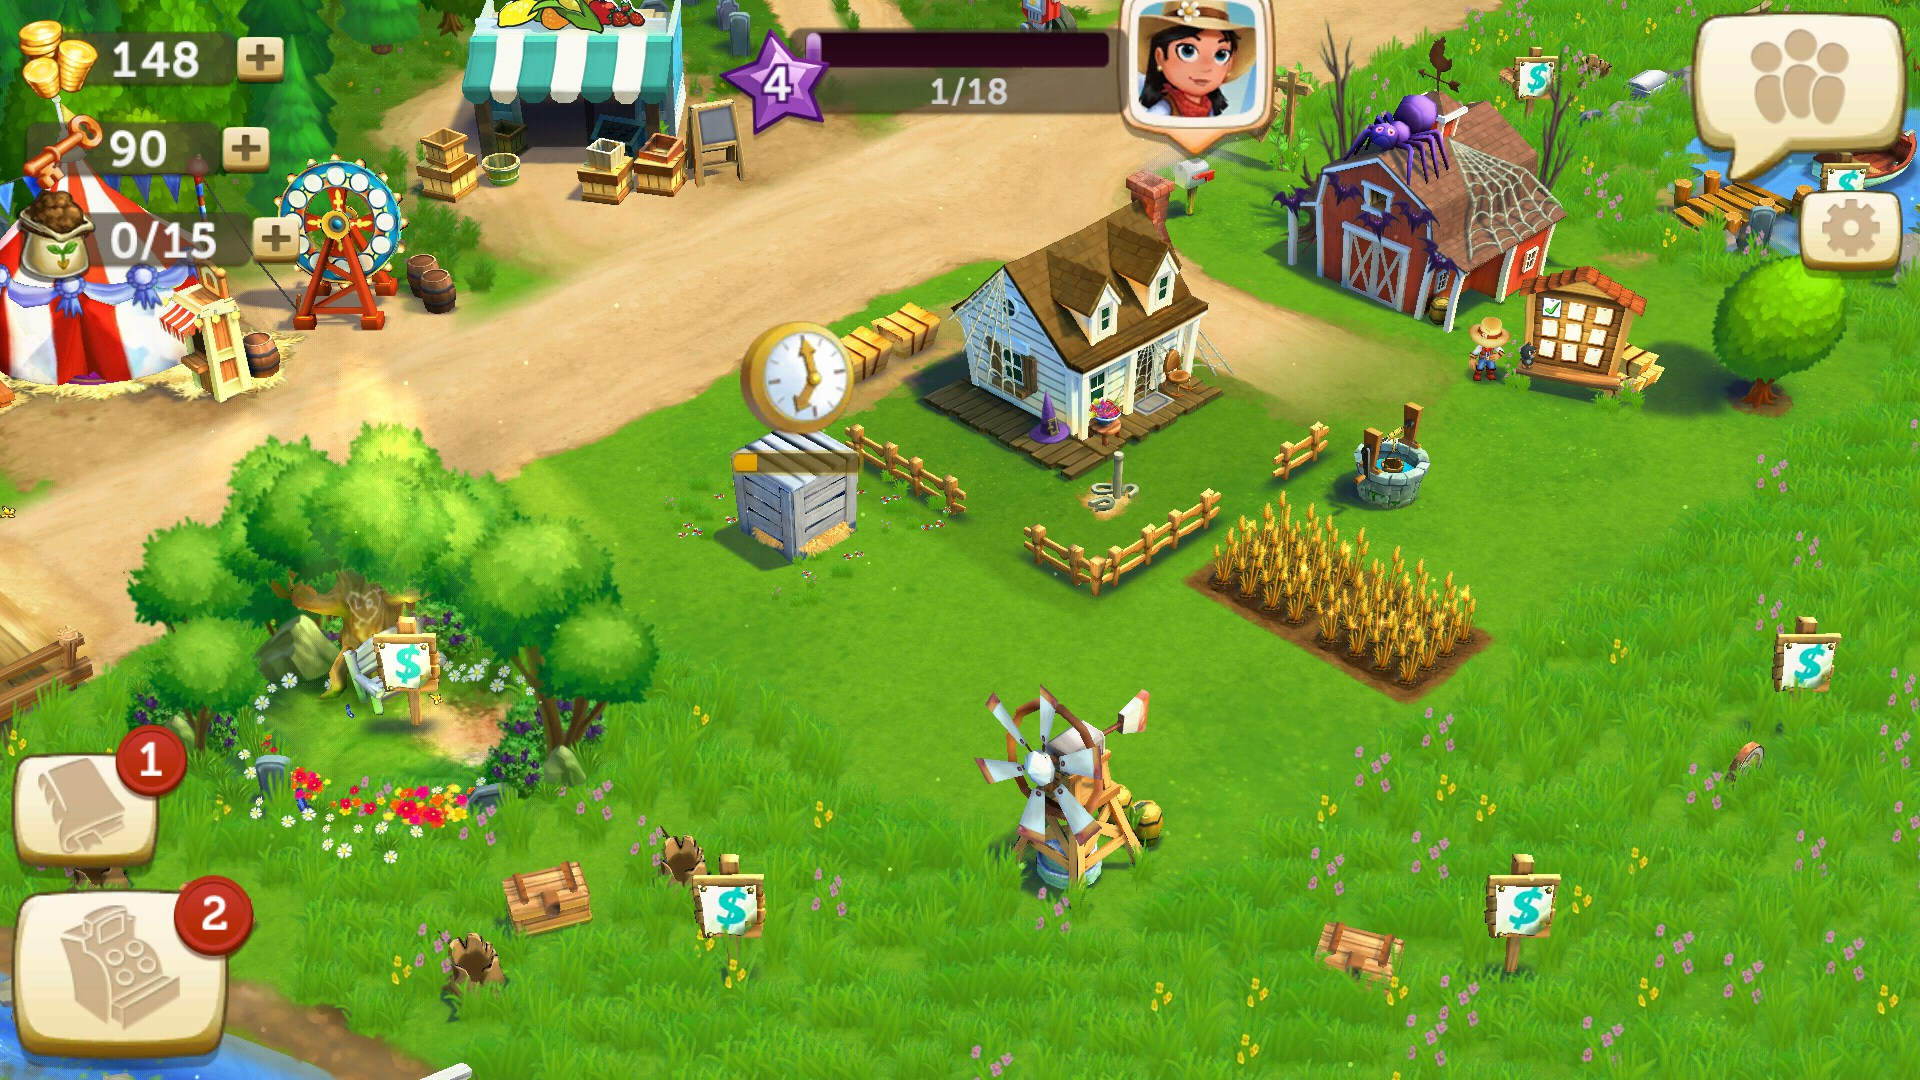 farmville 2 country escape per samsung galaxy tab 3 7 0 scaricare gratis giochi per android. Black Bedroom Furniture Sets. Home Design Ideas